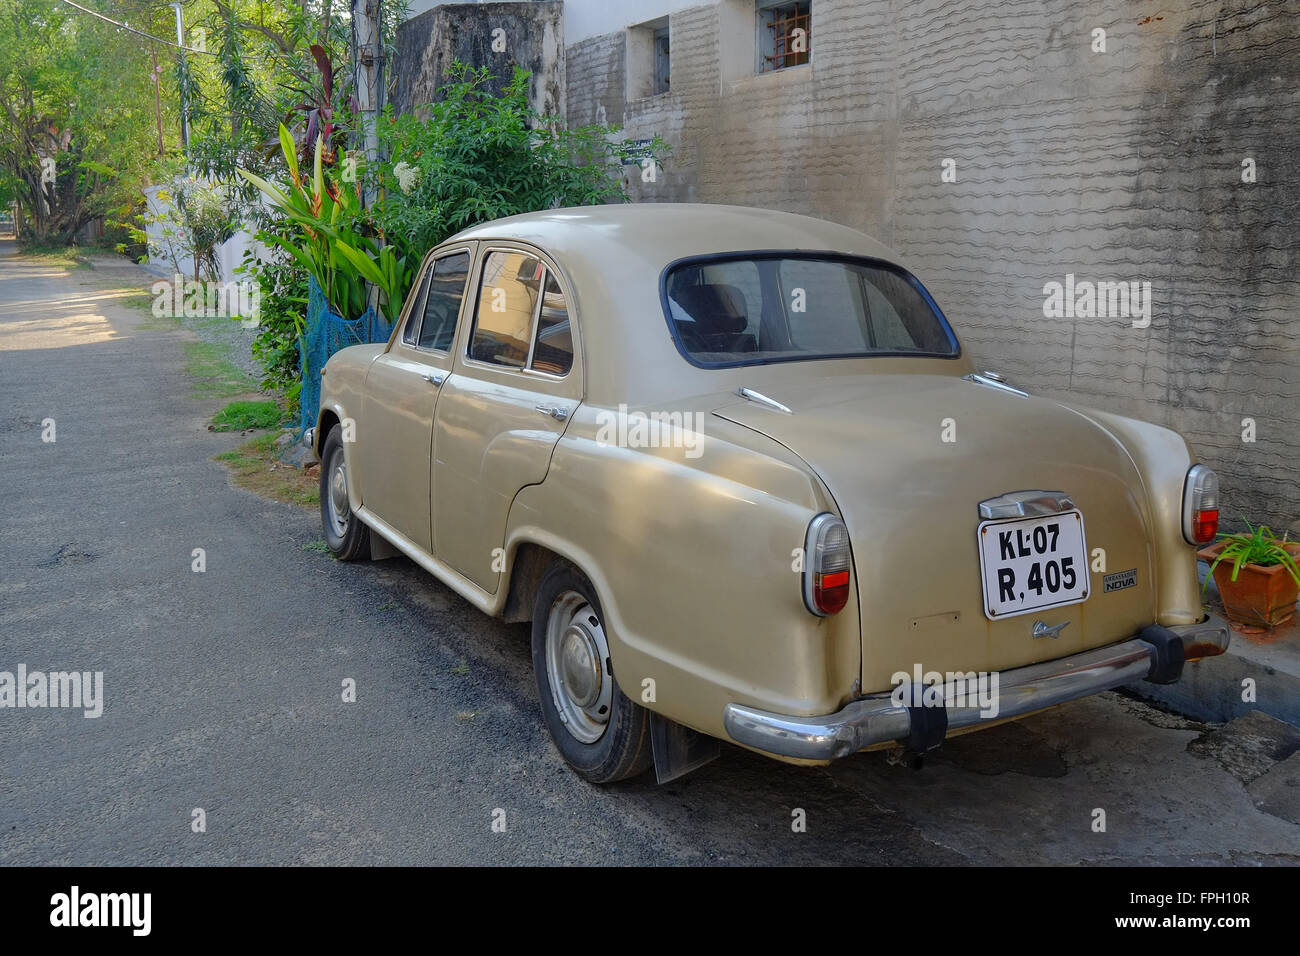 An Ambassador car in the old town of Kochi , Kerala, India - Stock Image